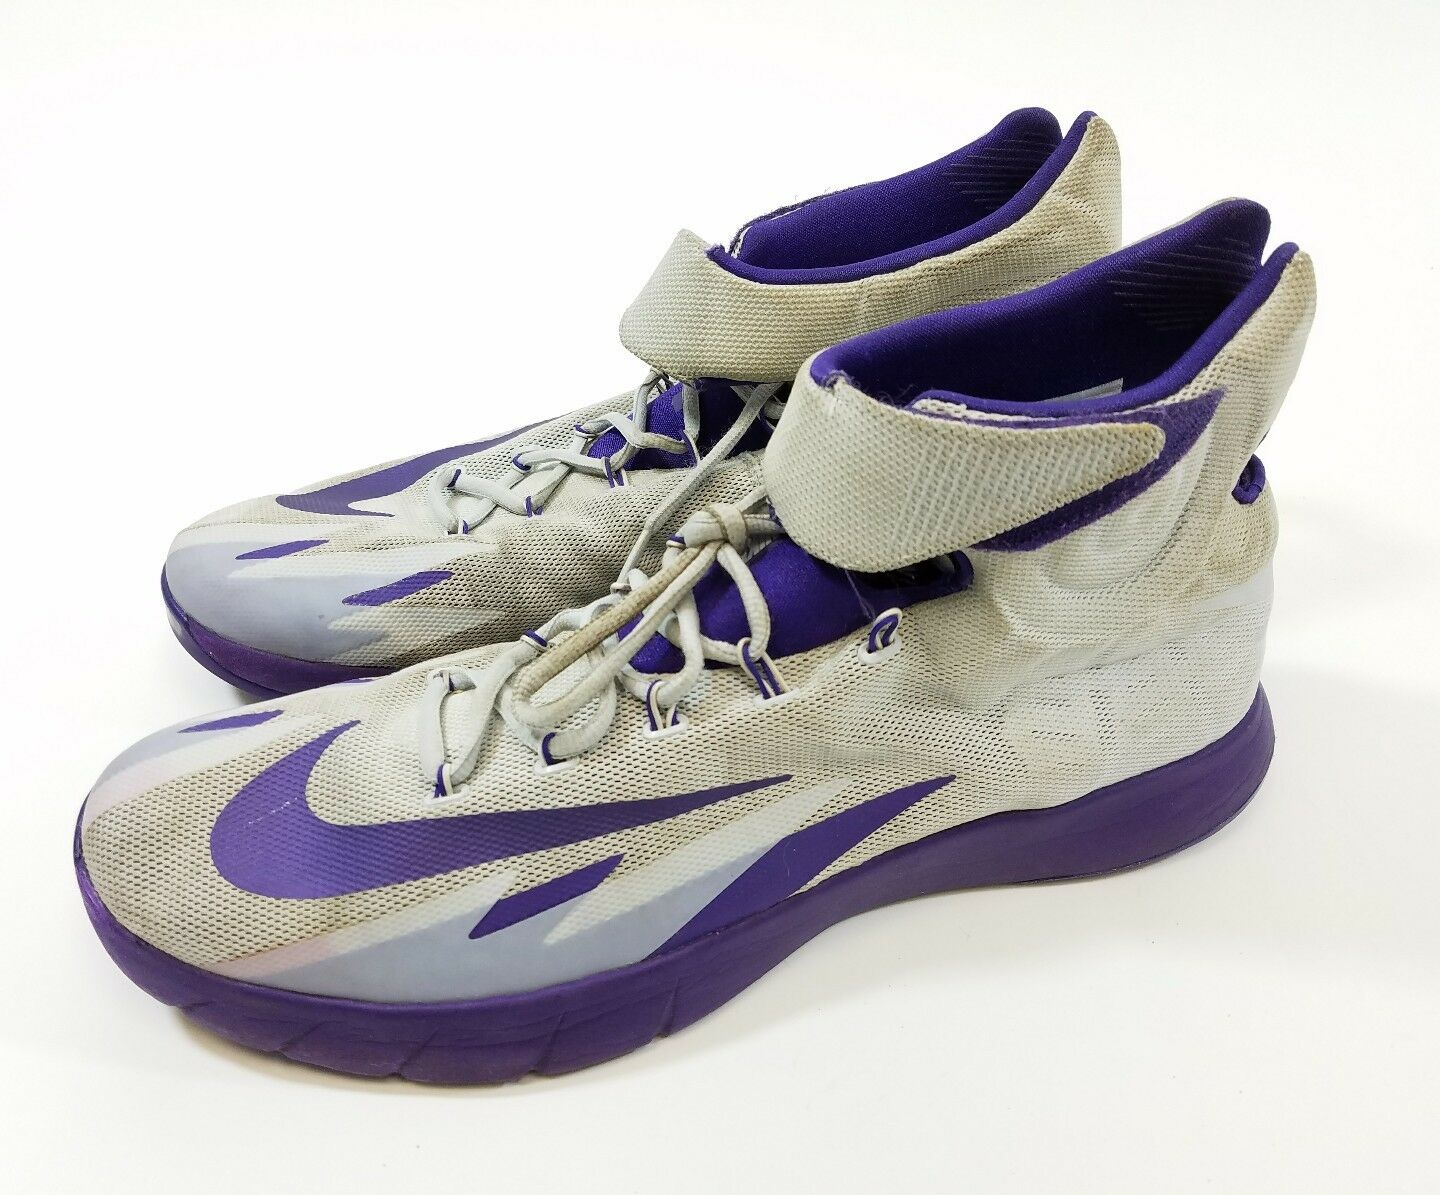 Mens 2013 Nike Zoom 018 HyperRev Kyrie Erving 643301 018 Zoom Purple Basketball Shoes 14 dfd4a1